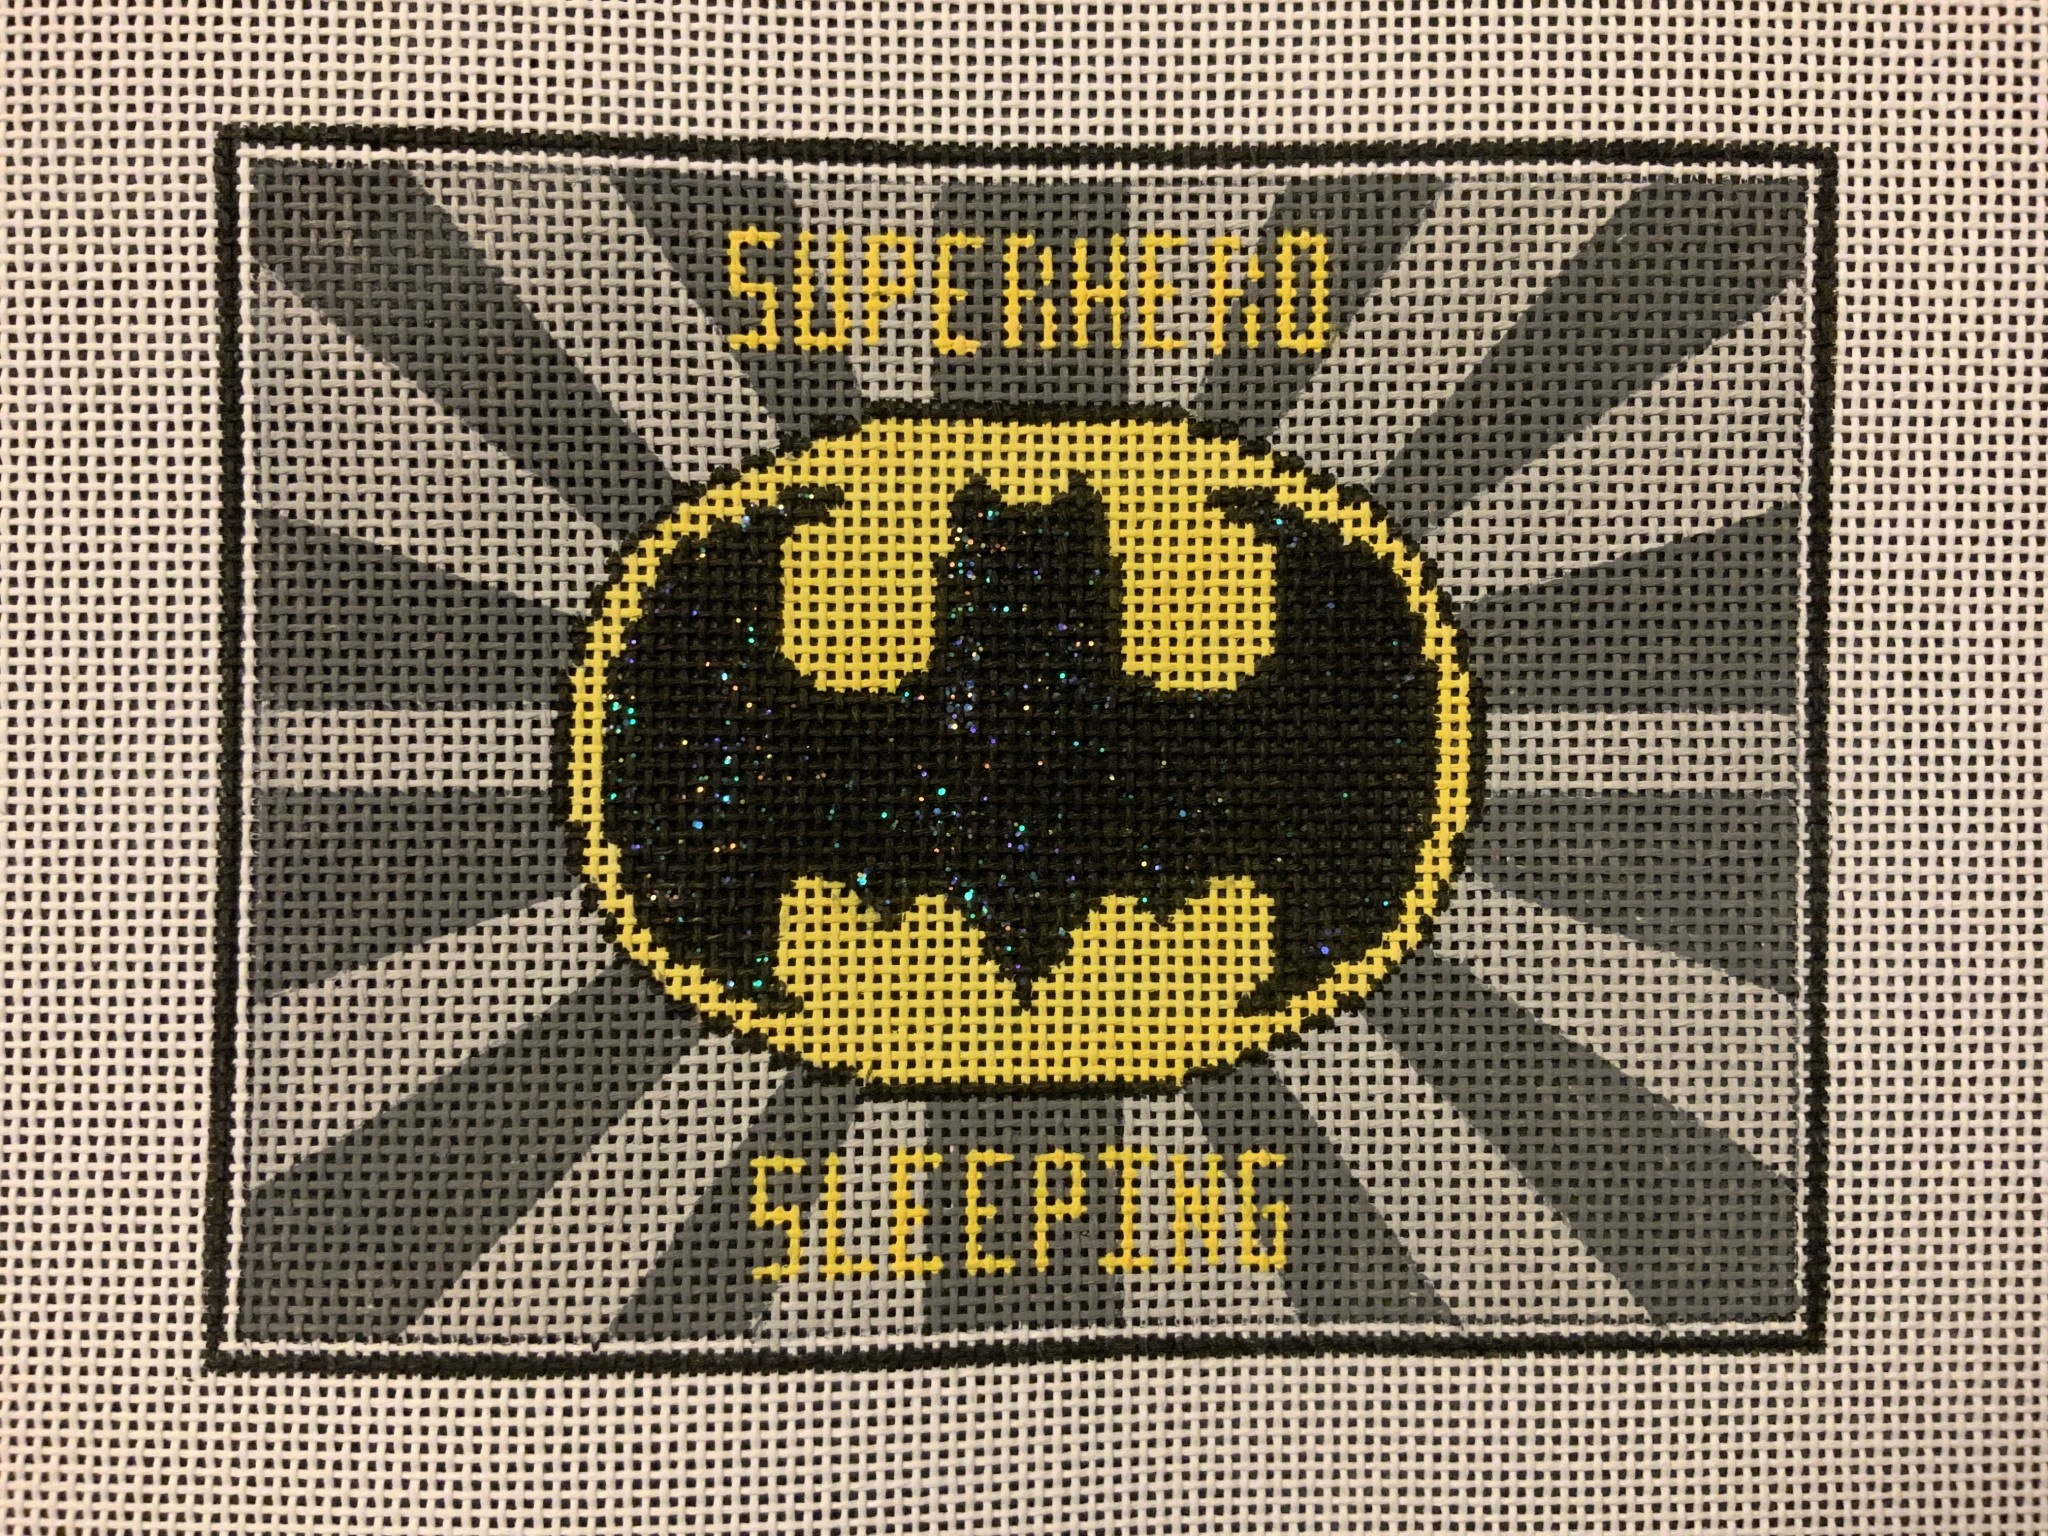 Superhero Sleeping Batman